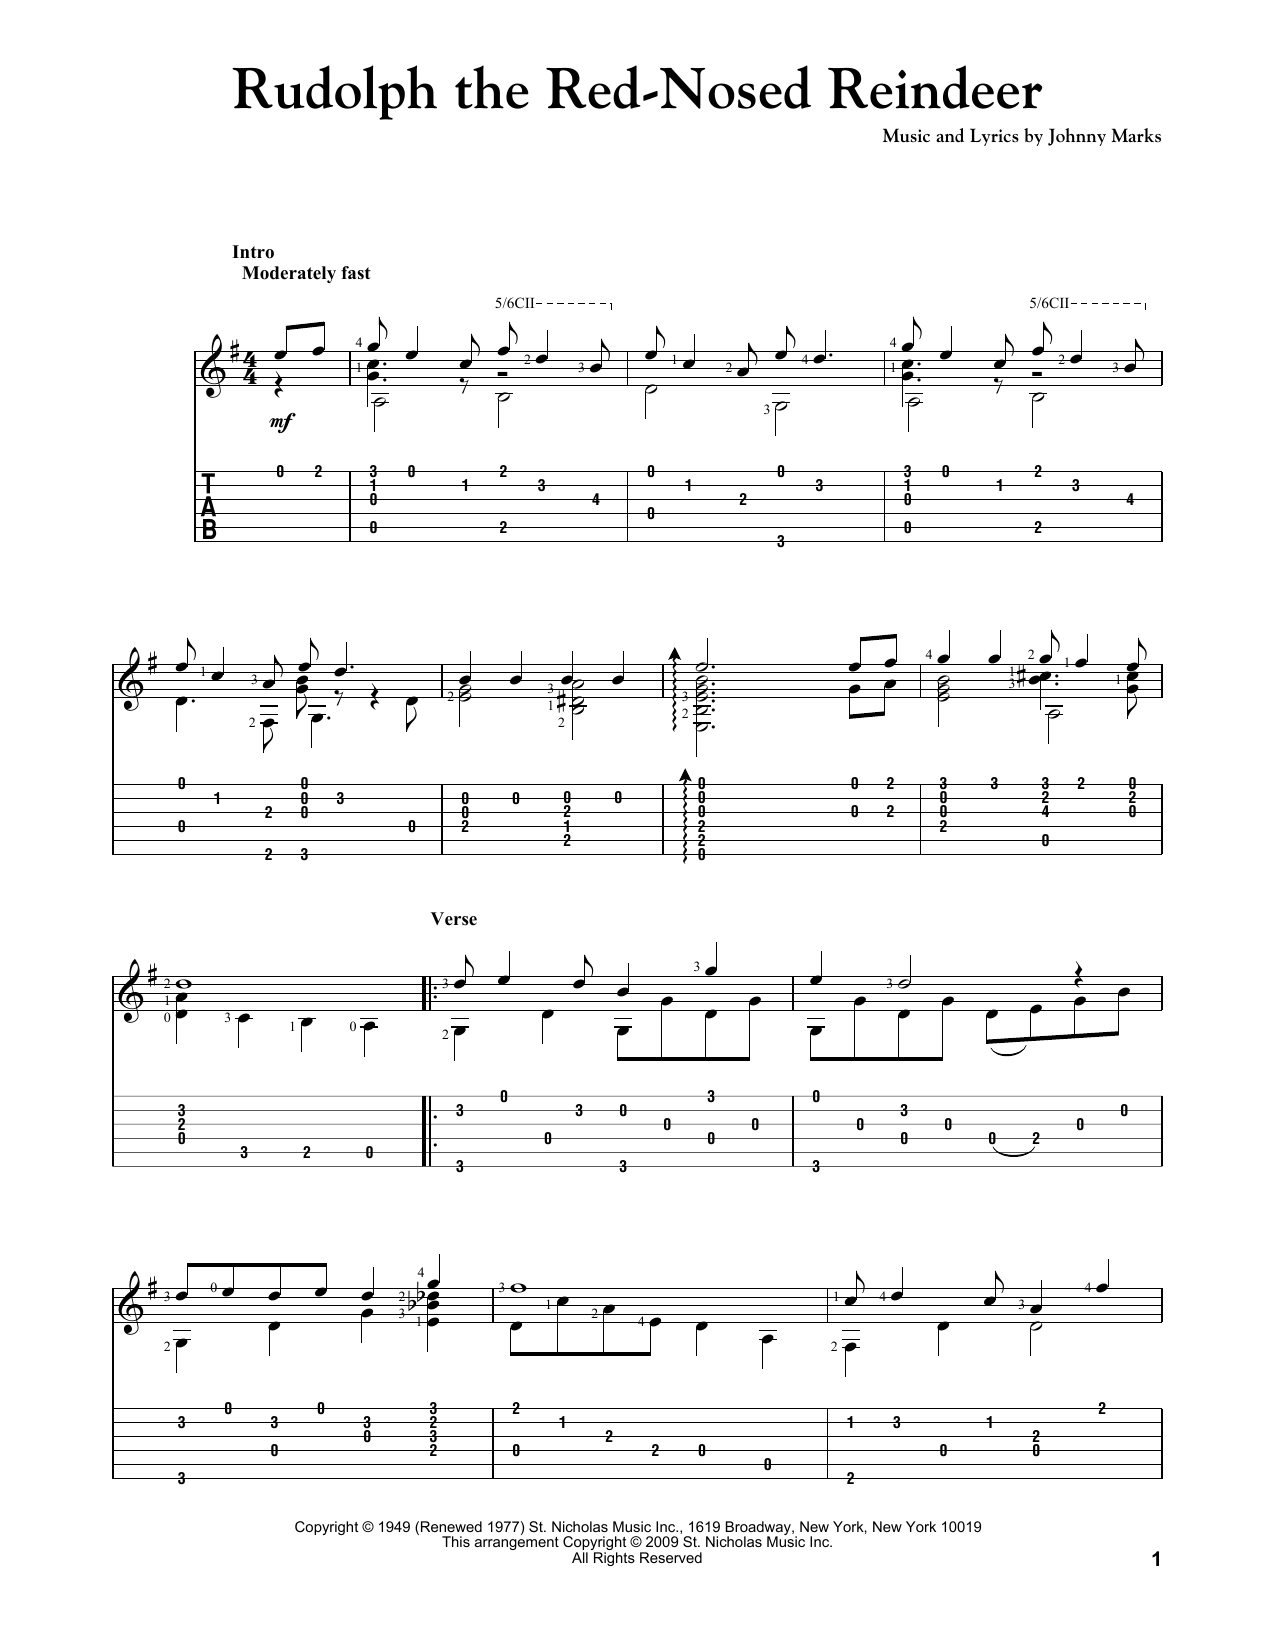 picture relating to Rudolph the Red Nosed Reindeer Lyrics Printable known as Johnny Marks Rudolph The Pink-Nosed Reindeer Sheet Songs Notes, Chords  Obtain Printable Guitar Tab - SKU: 83169